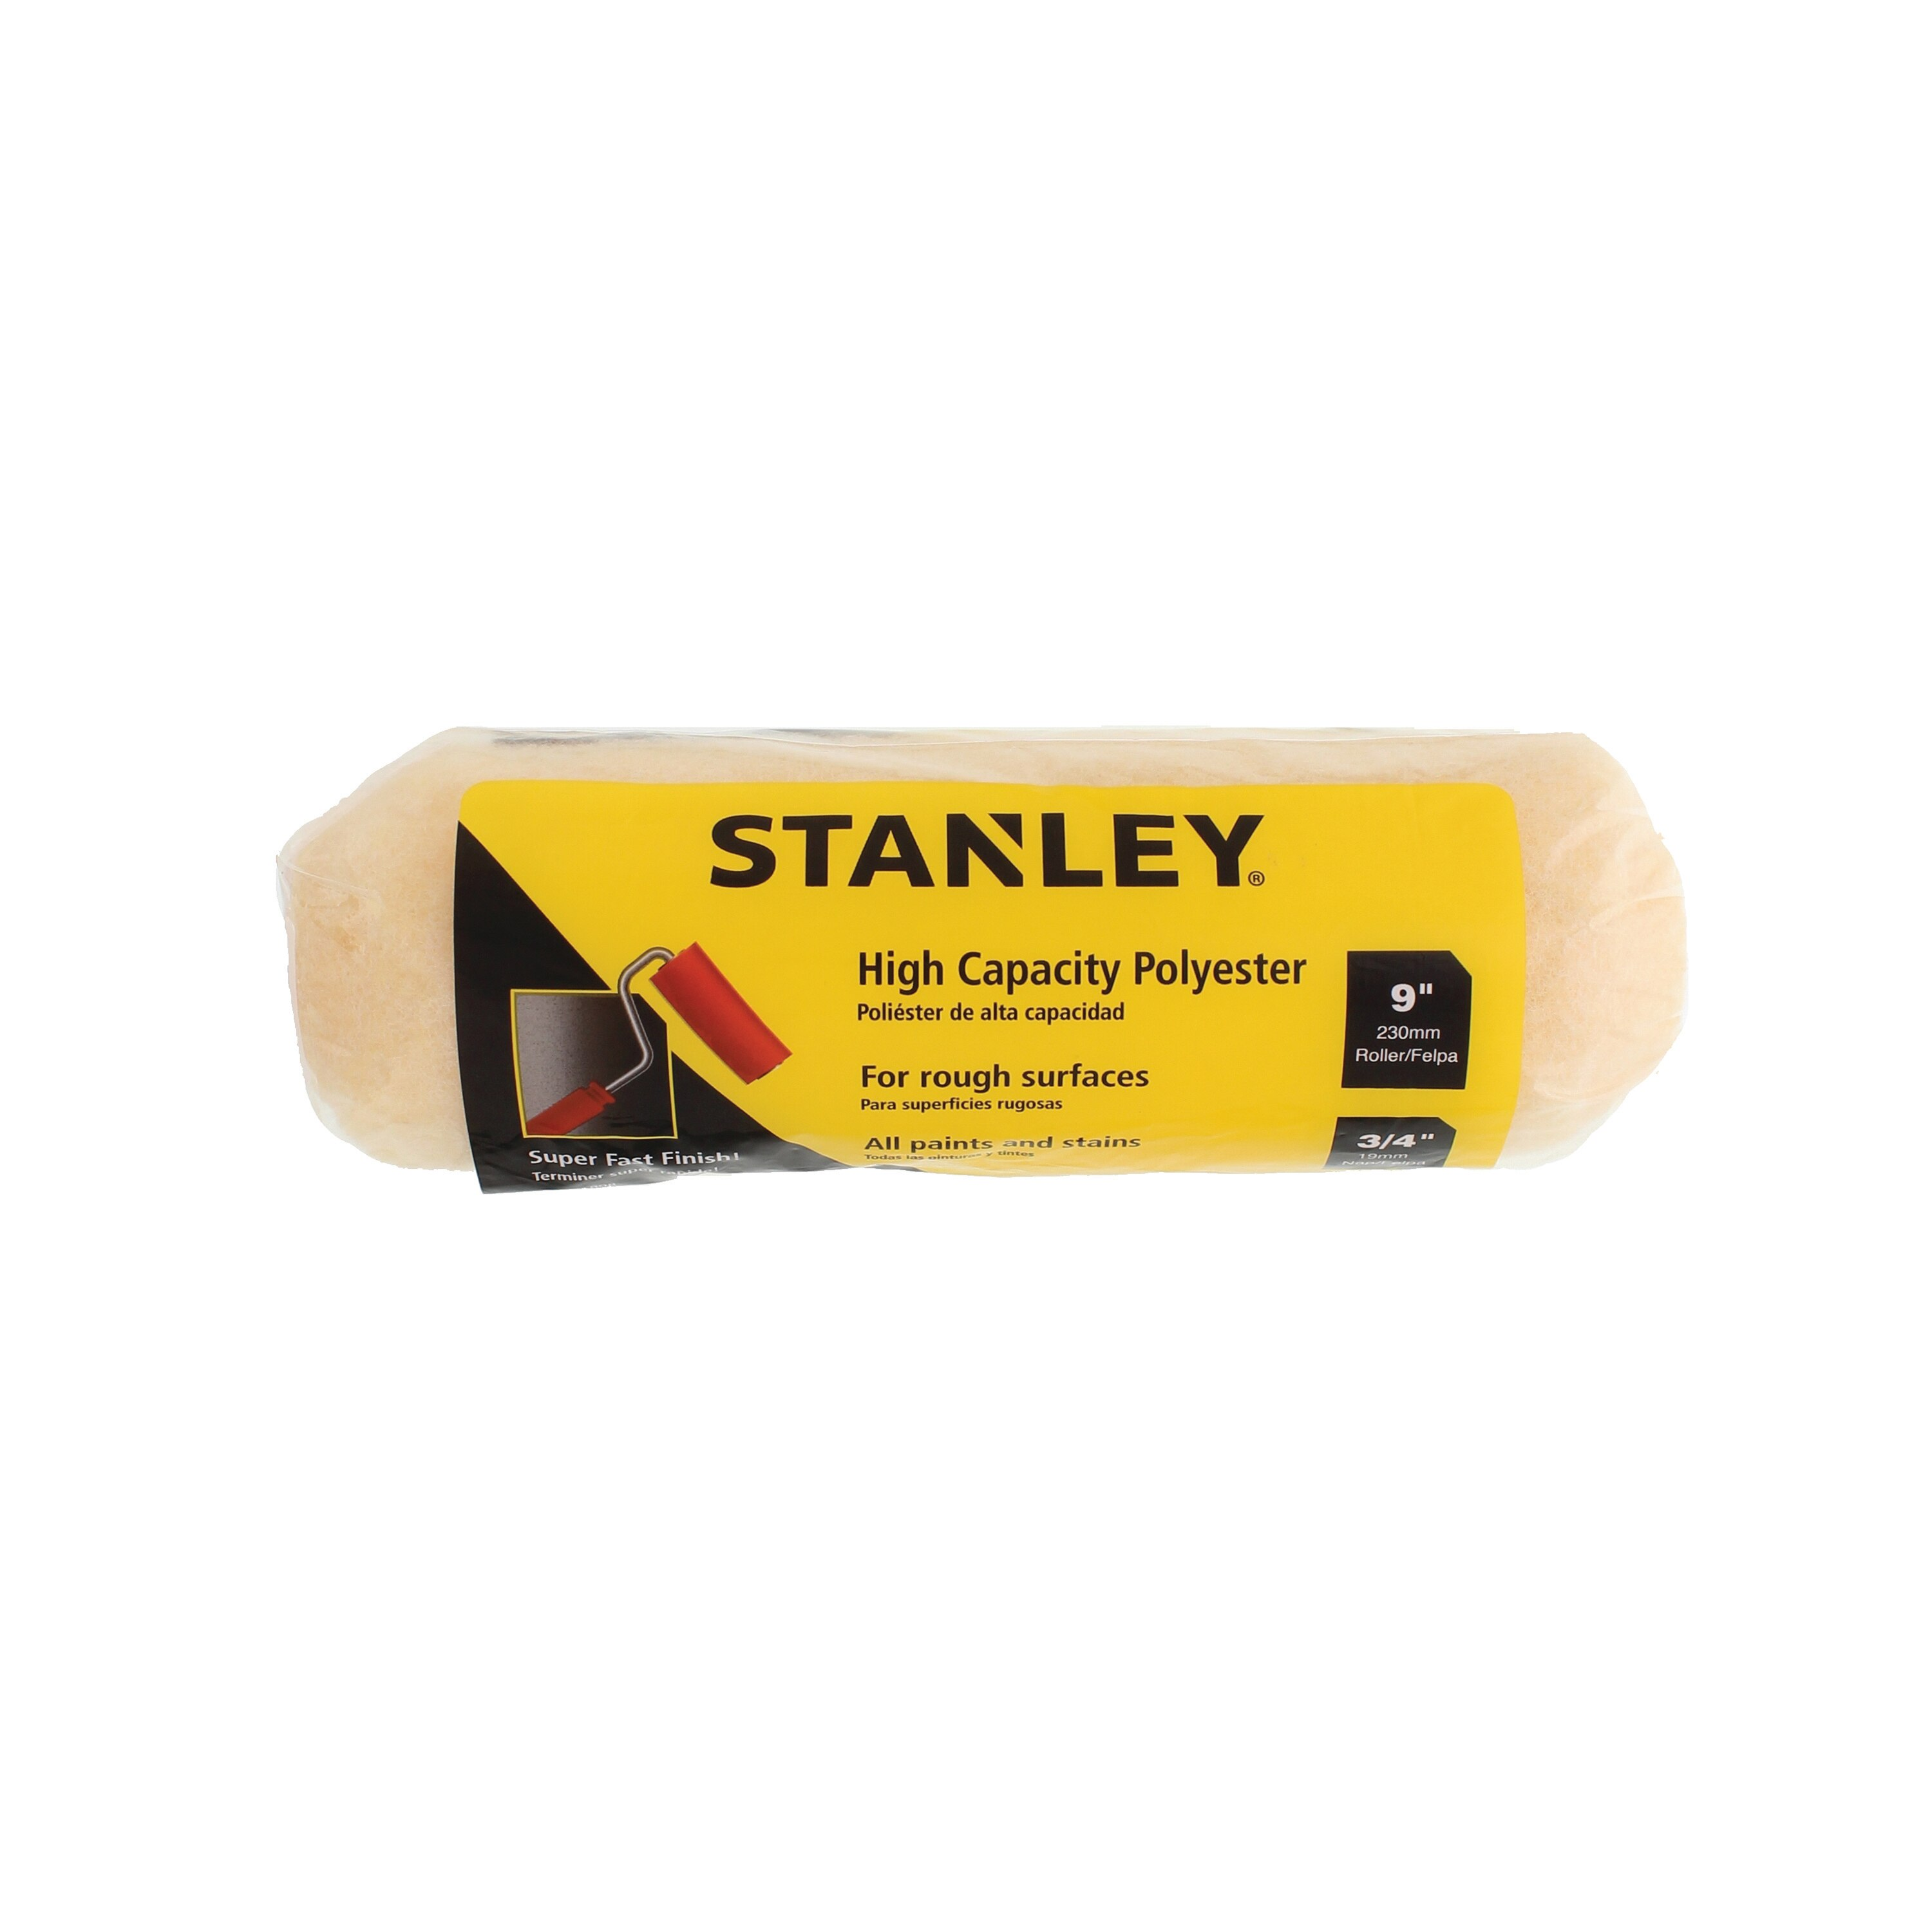 Stanley Tools - 9 in x 34 in Polyester Roller Cover - RCST01898